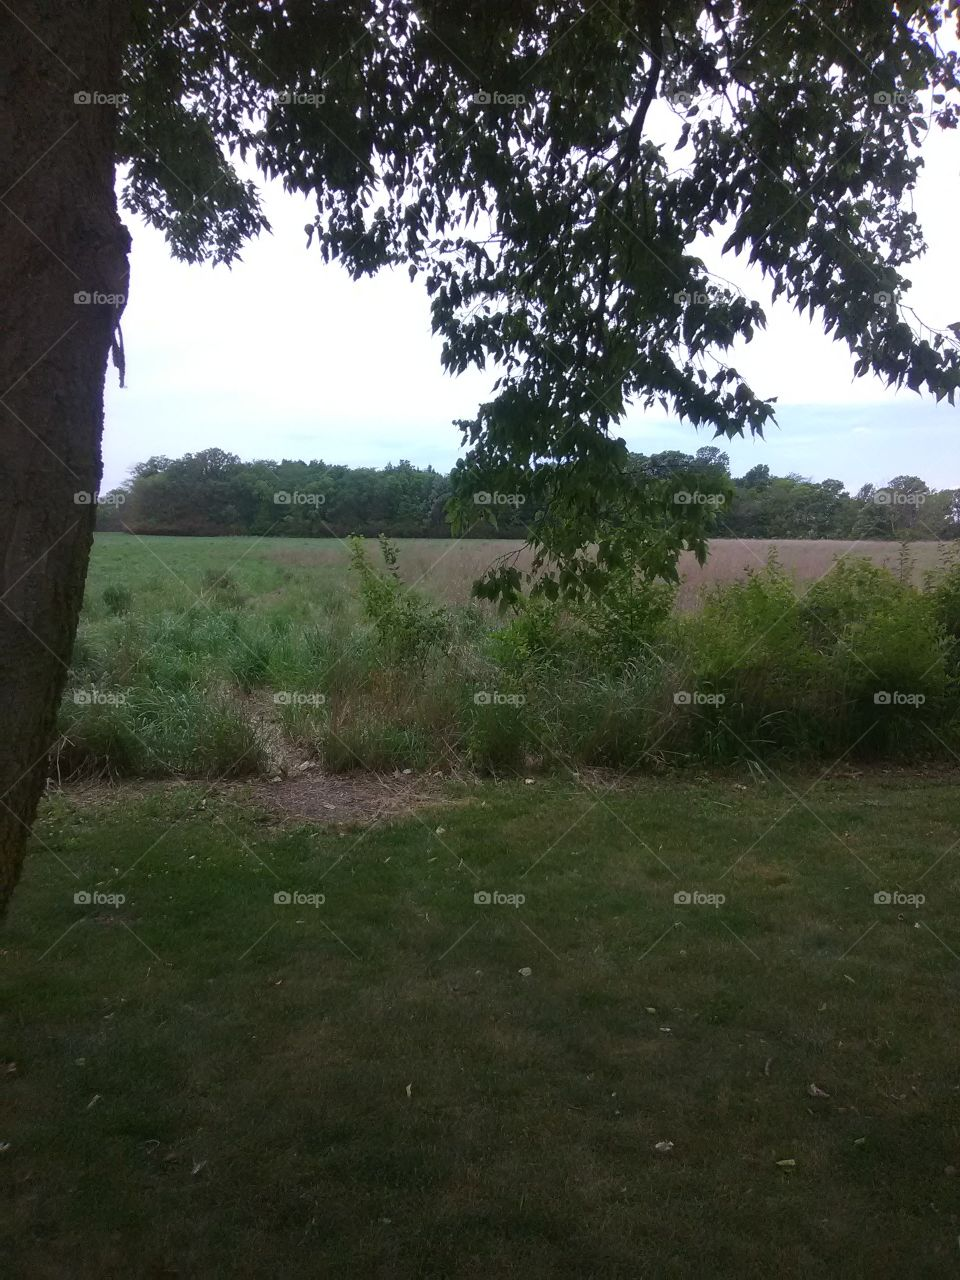 anybody else just wanna run through this field and feel free .